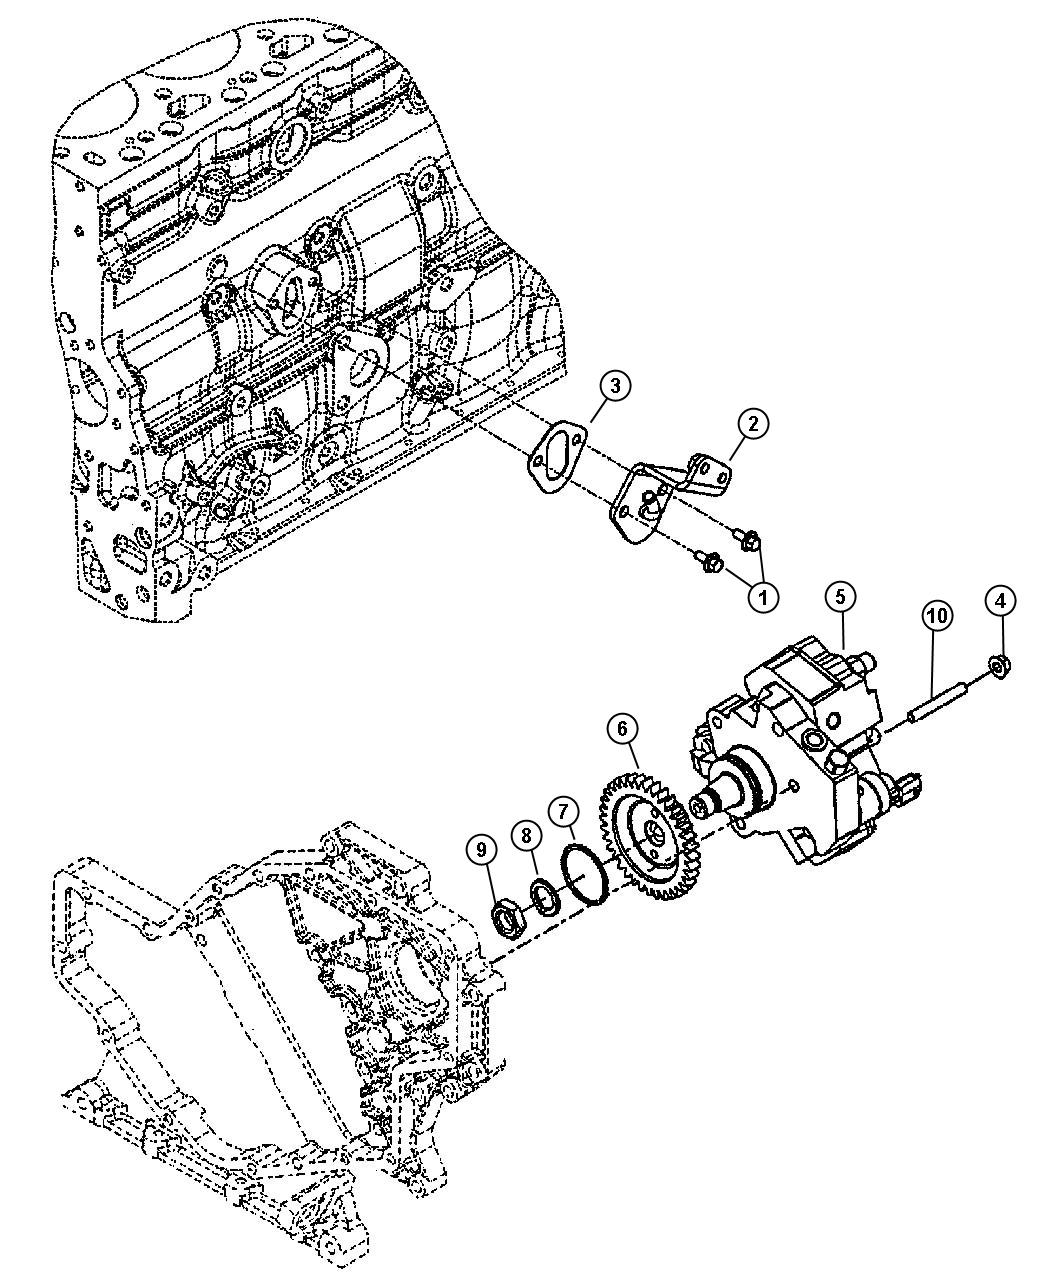 Dodge Cummins Serpentine Belt Diagram Pictures To Pin